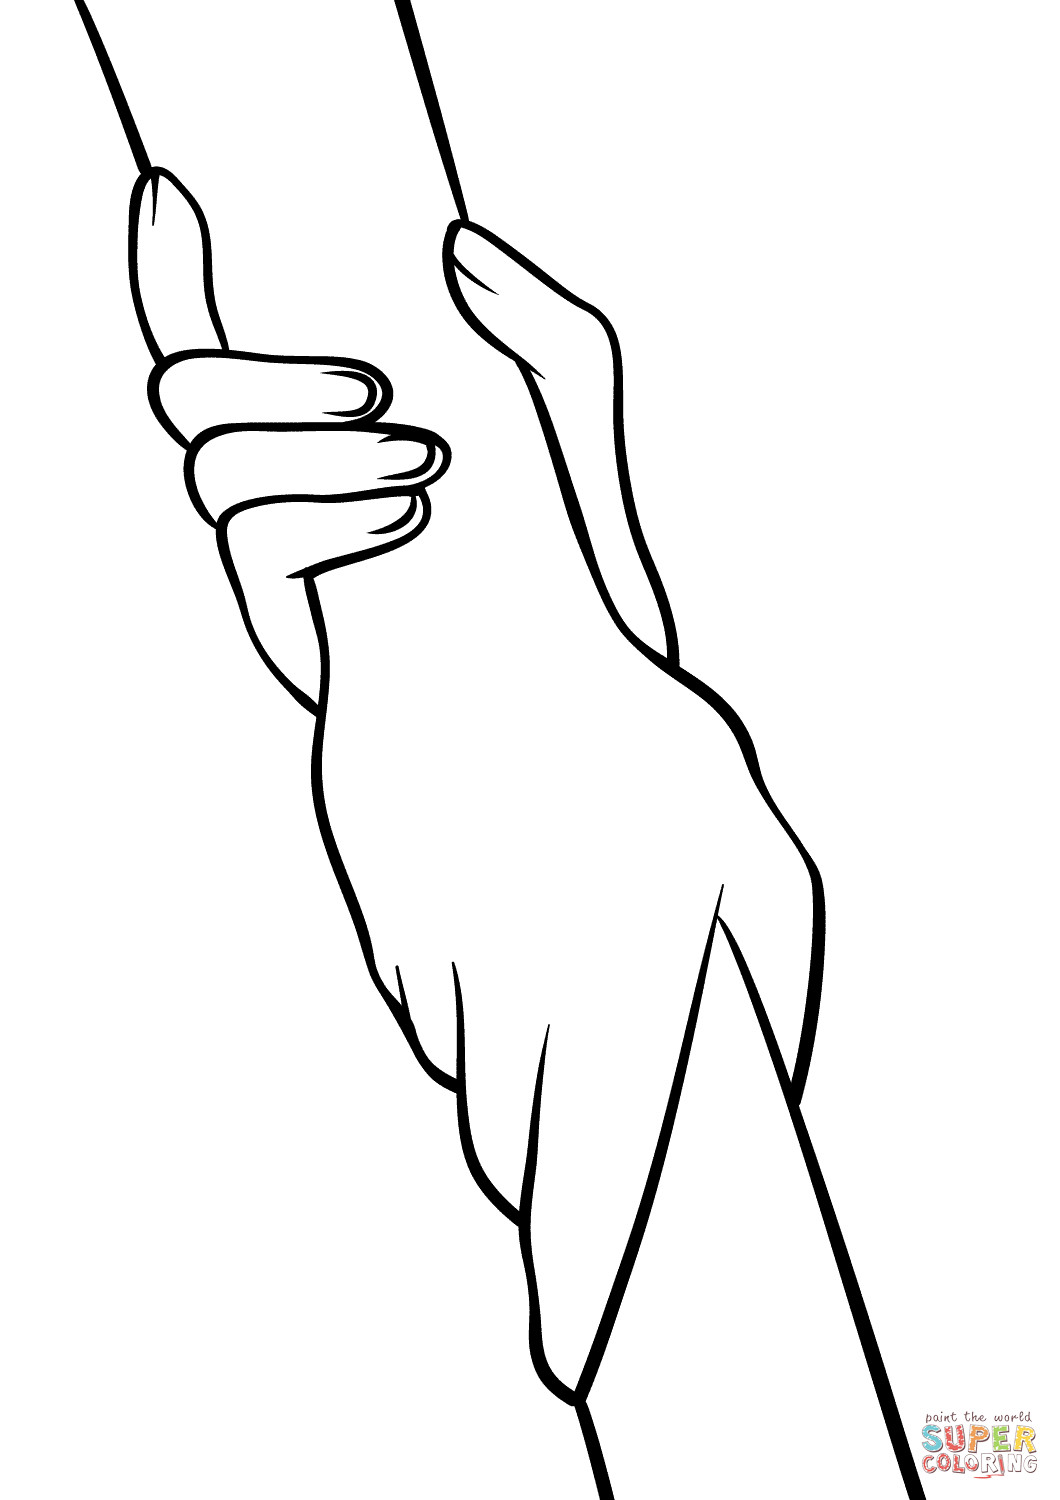 1060x1500 Helping Hands Coloring Page Free Printable Pages Remarkable Hand